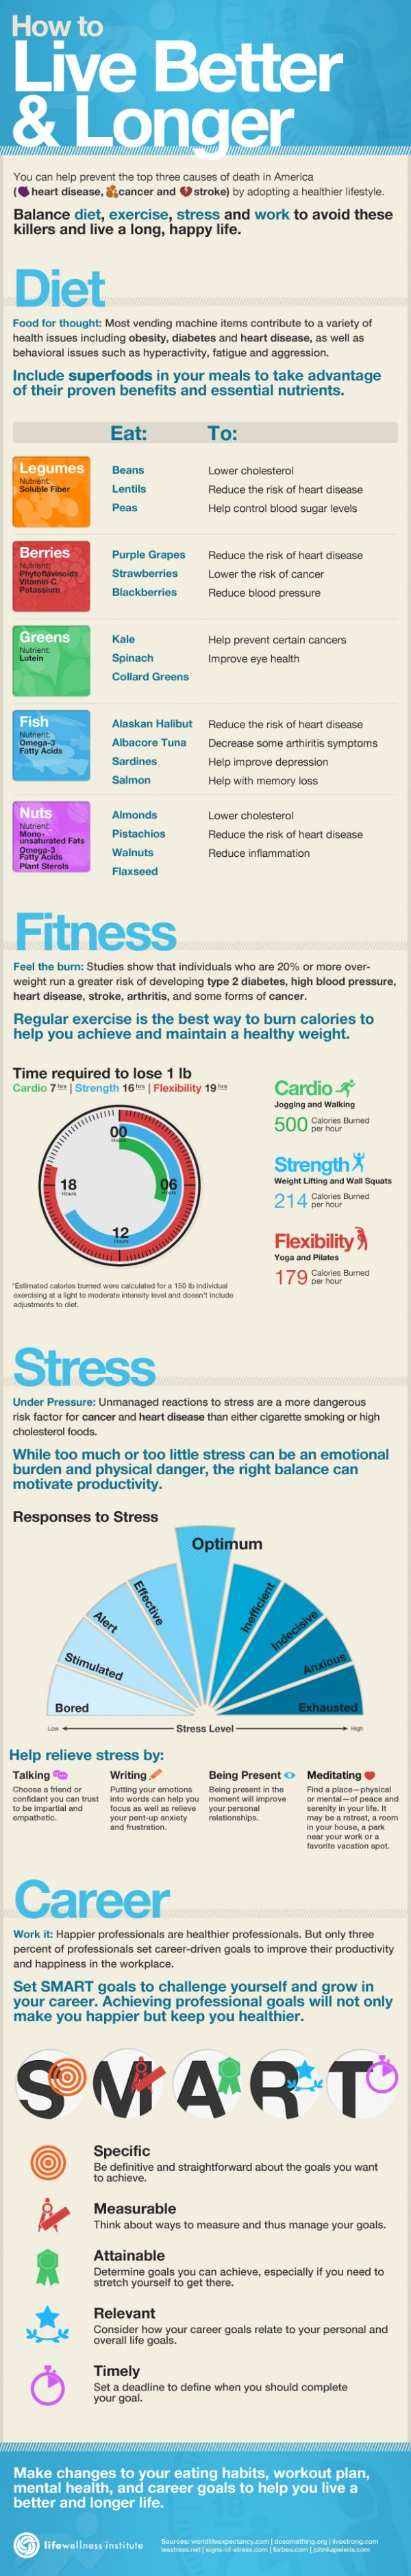 Yoga Infographic | How to Live Better & Longer: Infographic | YOGANONYMOUS